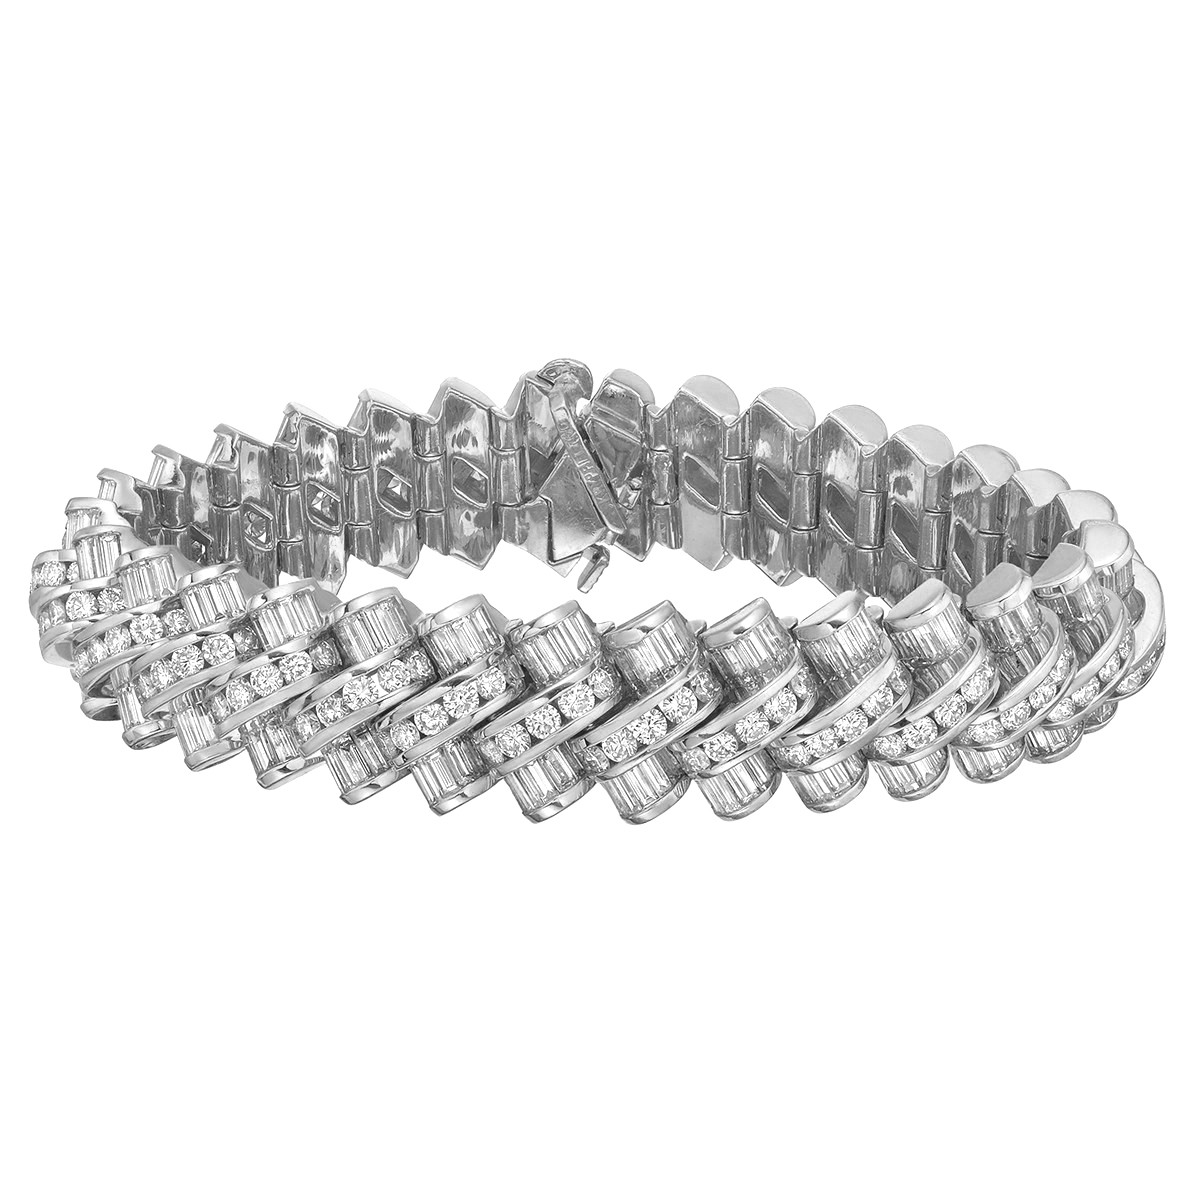 Krypell 18k White Gold & Diamond Bracelet